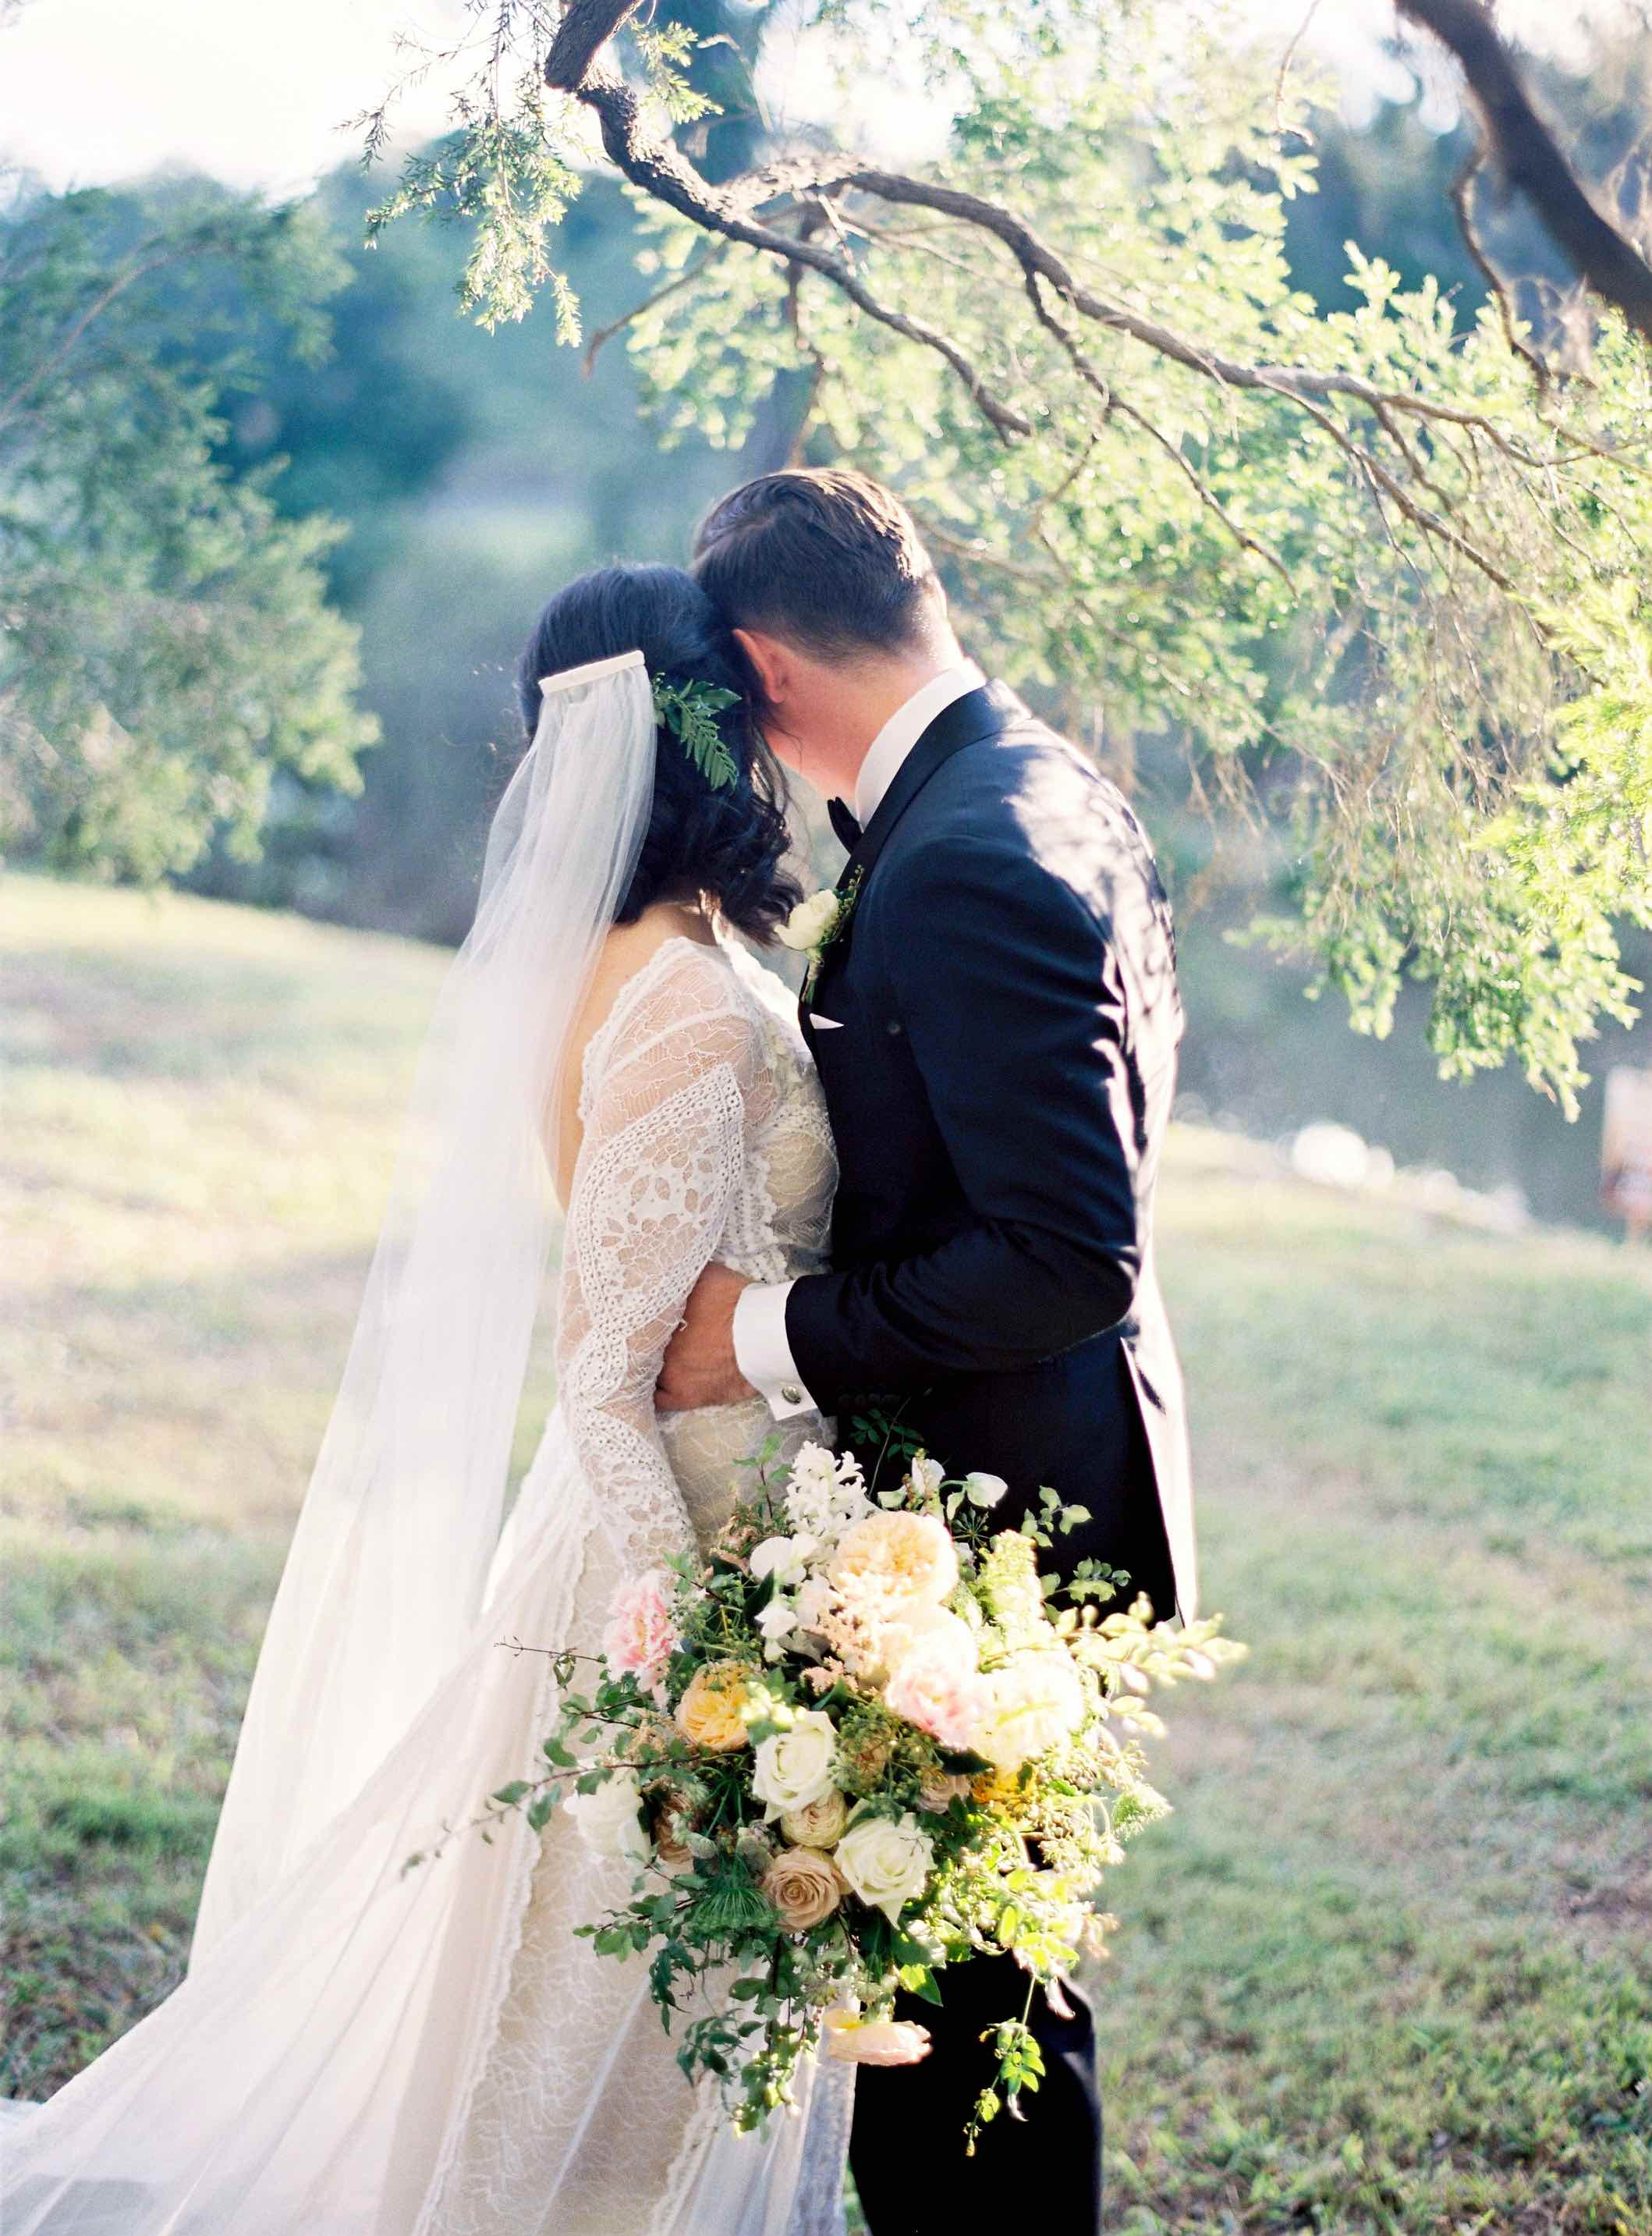 CHRISTINE + ANDREW - WED - BYRON LOVES FAWN399.jpg